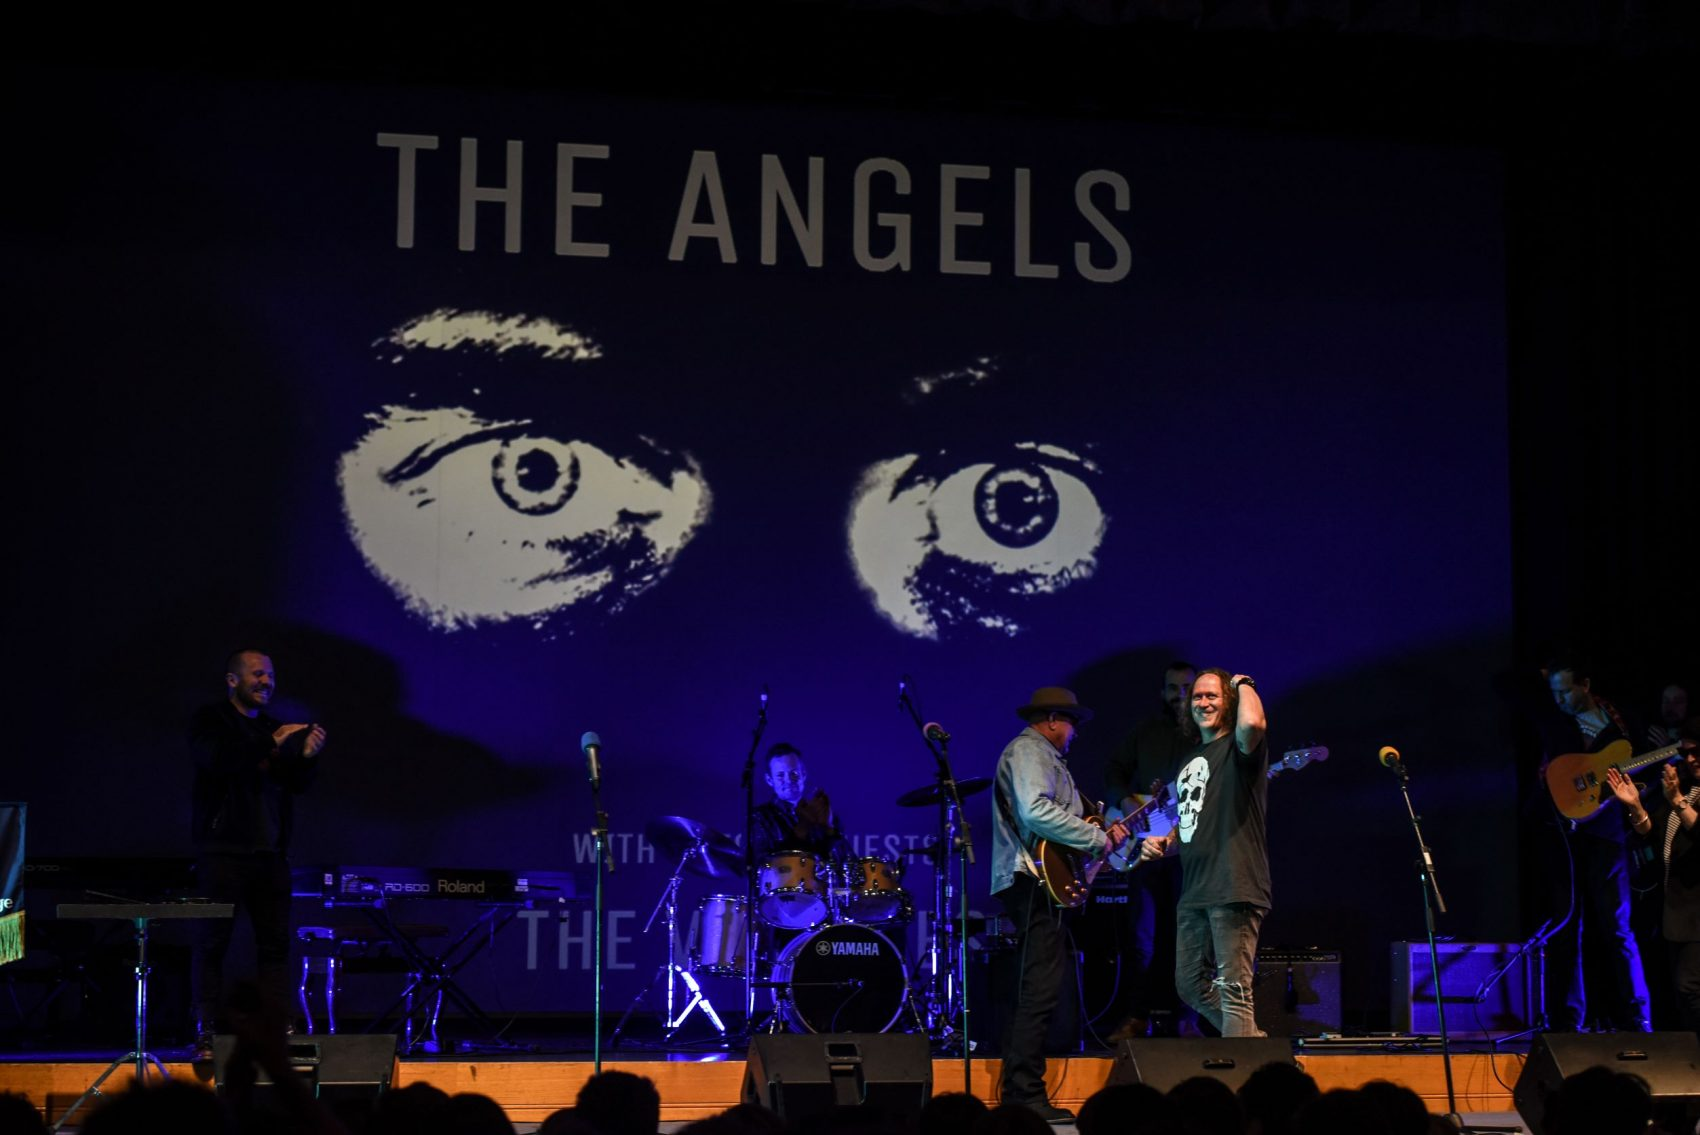 John Brewster and Dave Gleeson from 'The Angels' performing on stage at Battle of the Bands with St Peter's College staff members